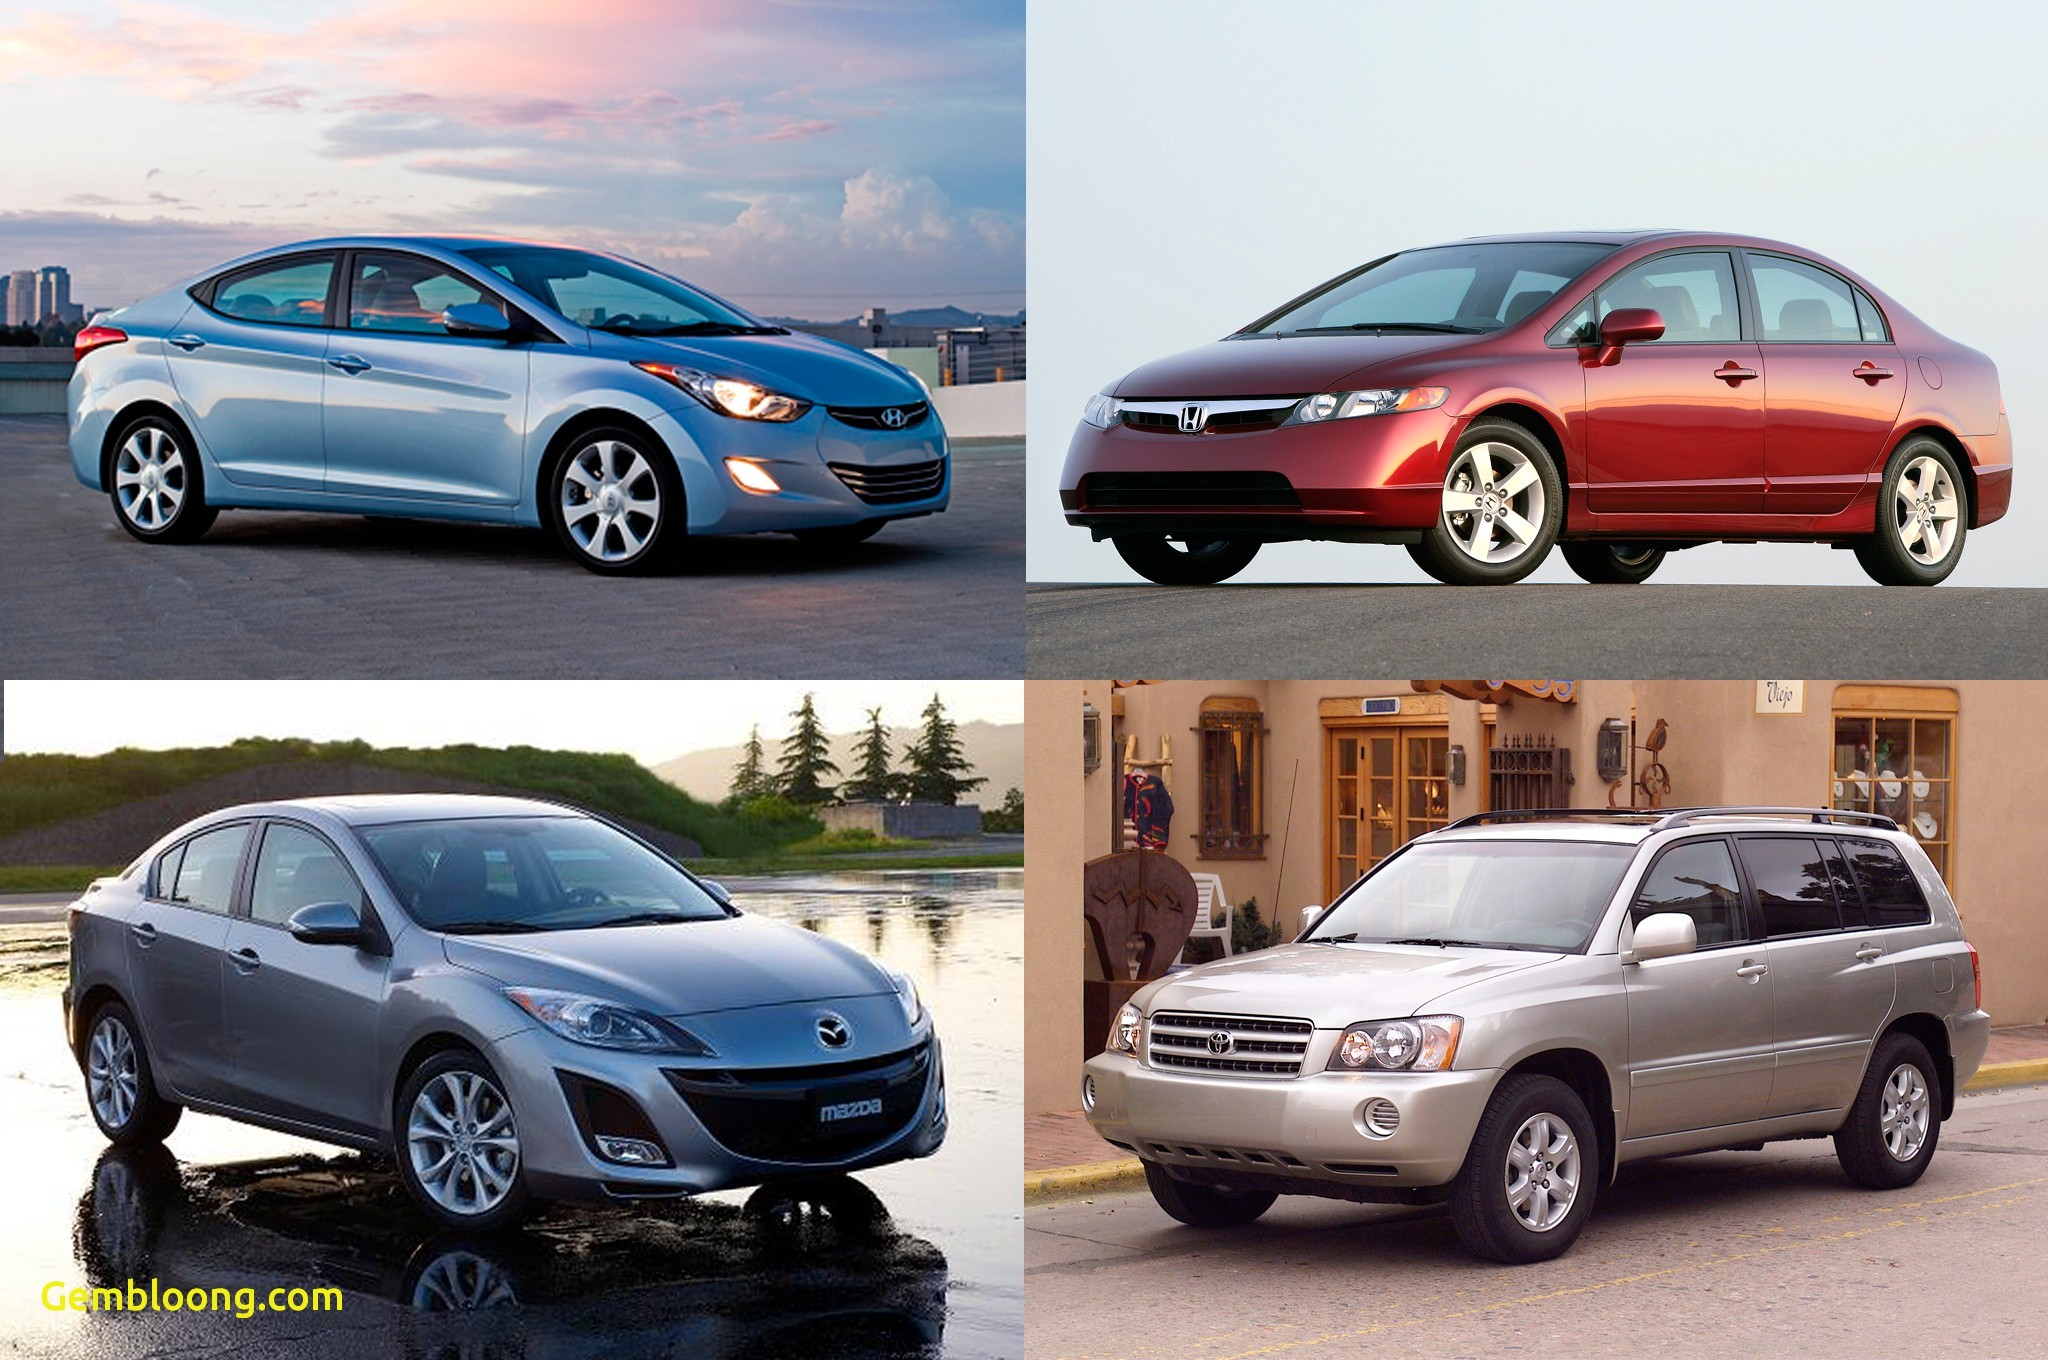 Best Used Cars for Sale Near Me Unique Elegant Best Used Cars Near Me